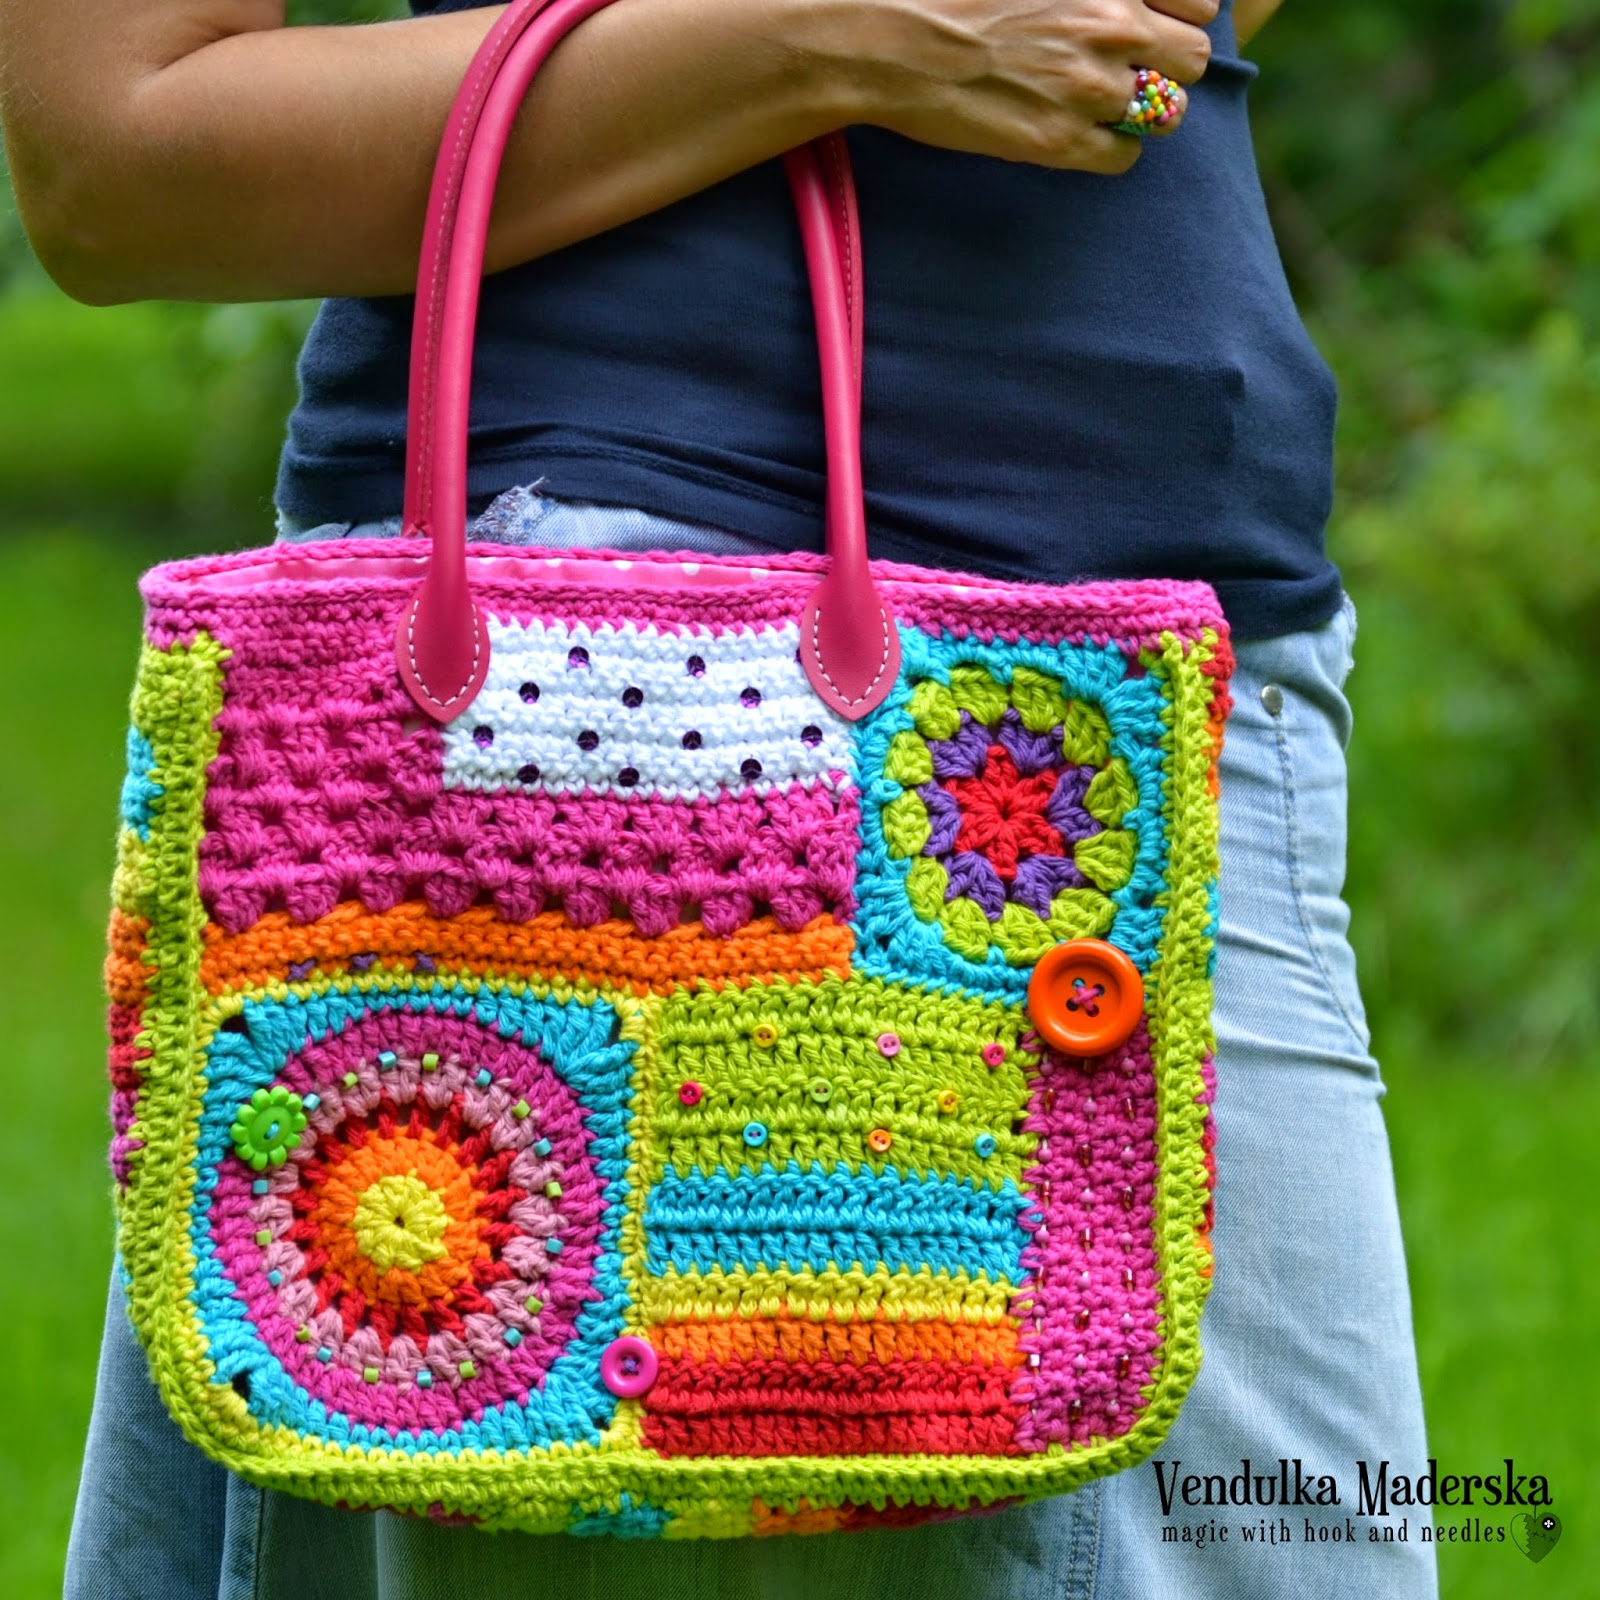 Crazy rainbow bag pattern